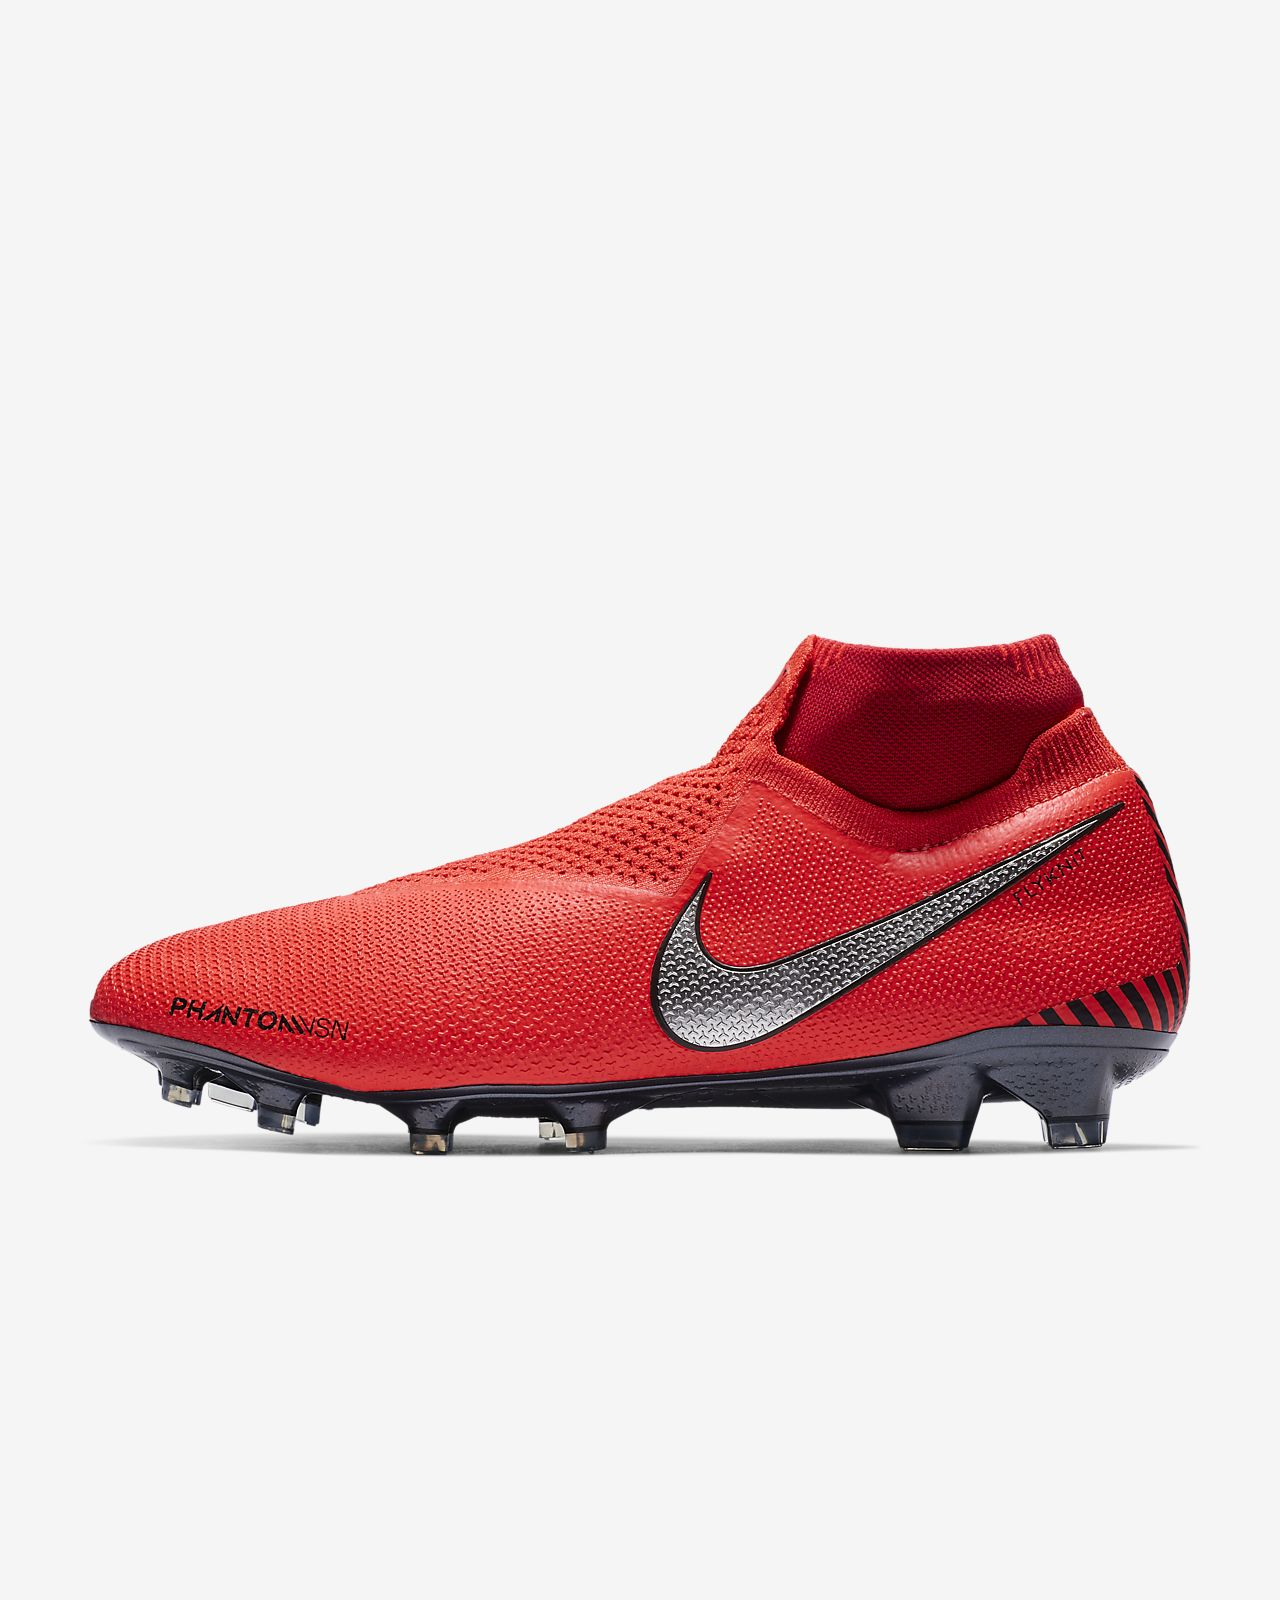 pretty nice 52970 09693 ... Nike PhantomVSN Elite Dynamic Fit Game Over FG Firm-Ground Soccer Cleat